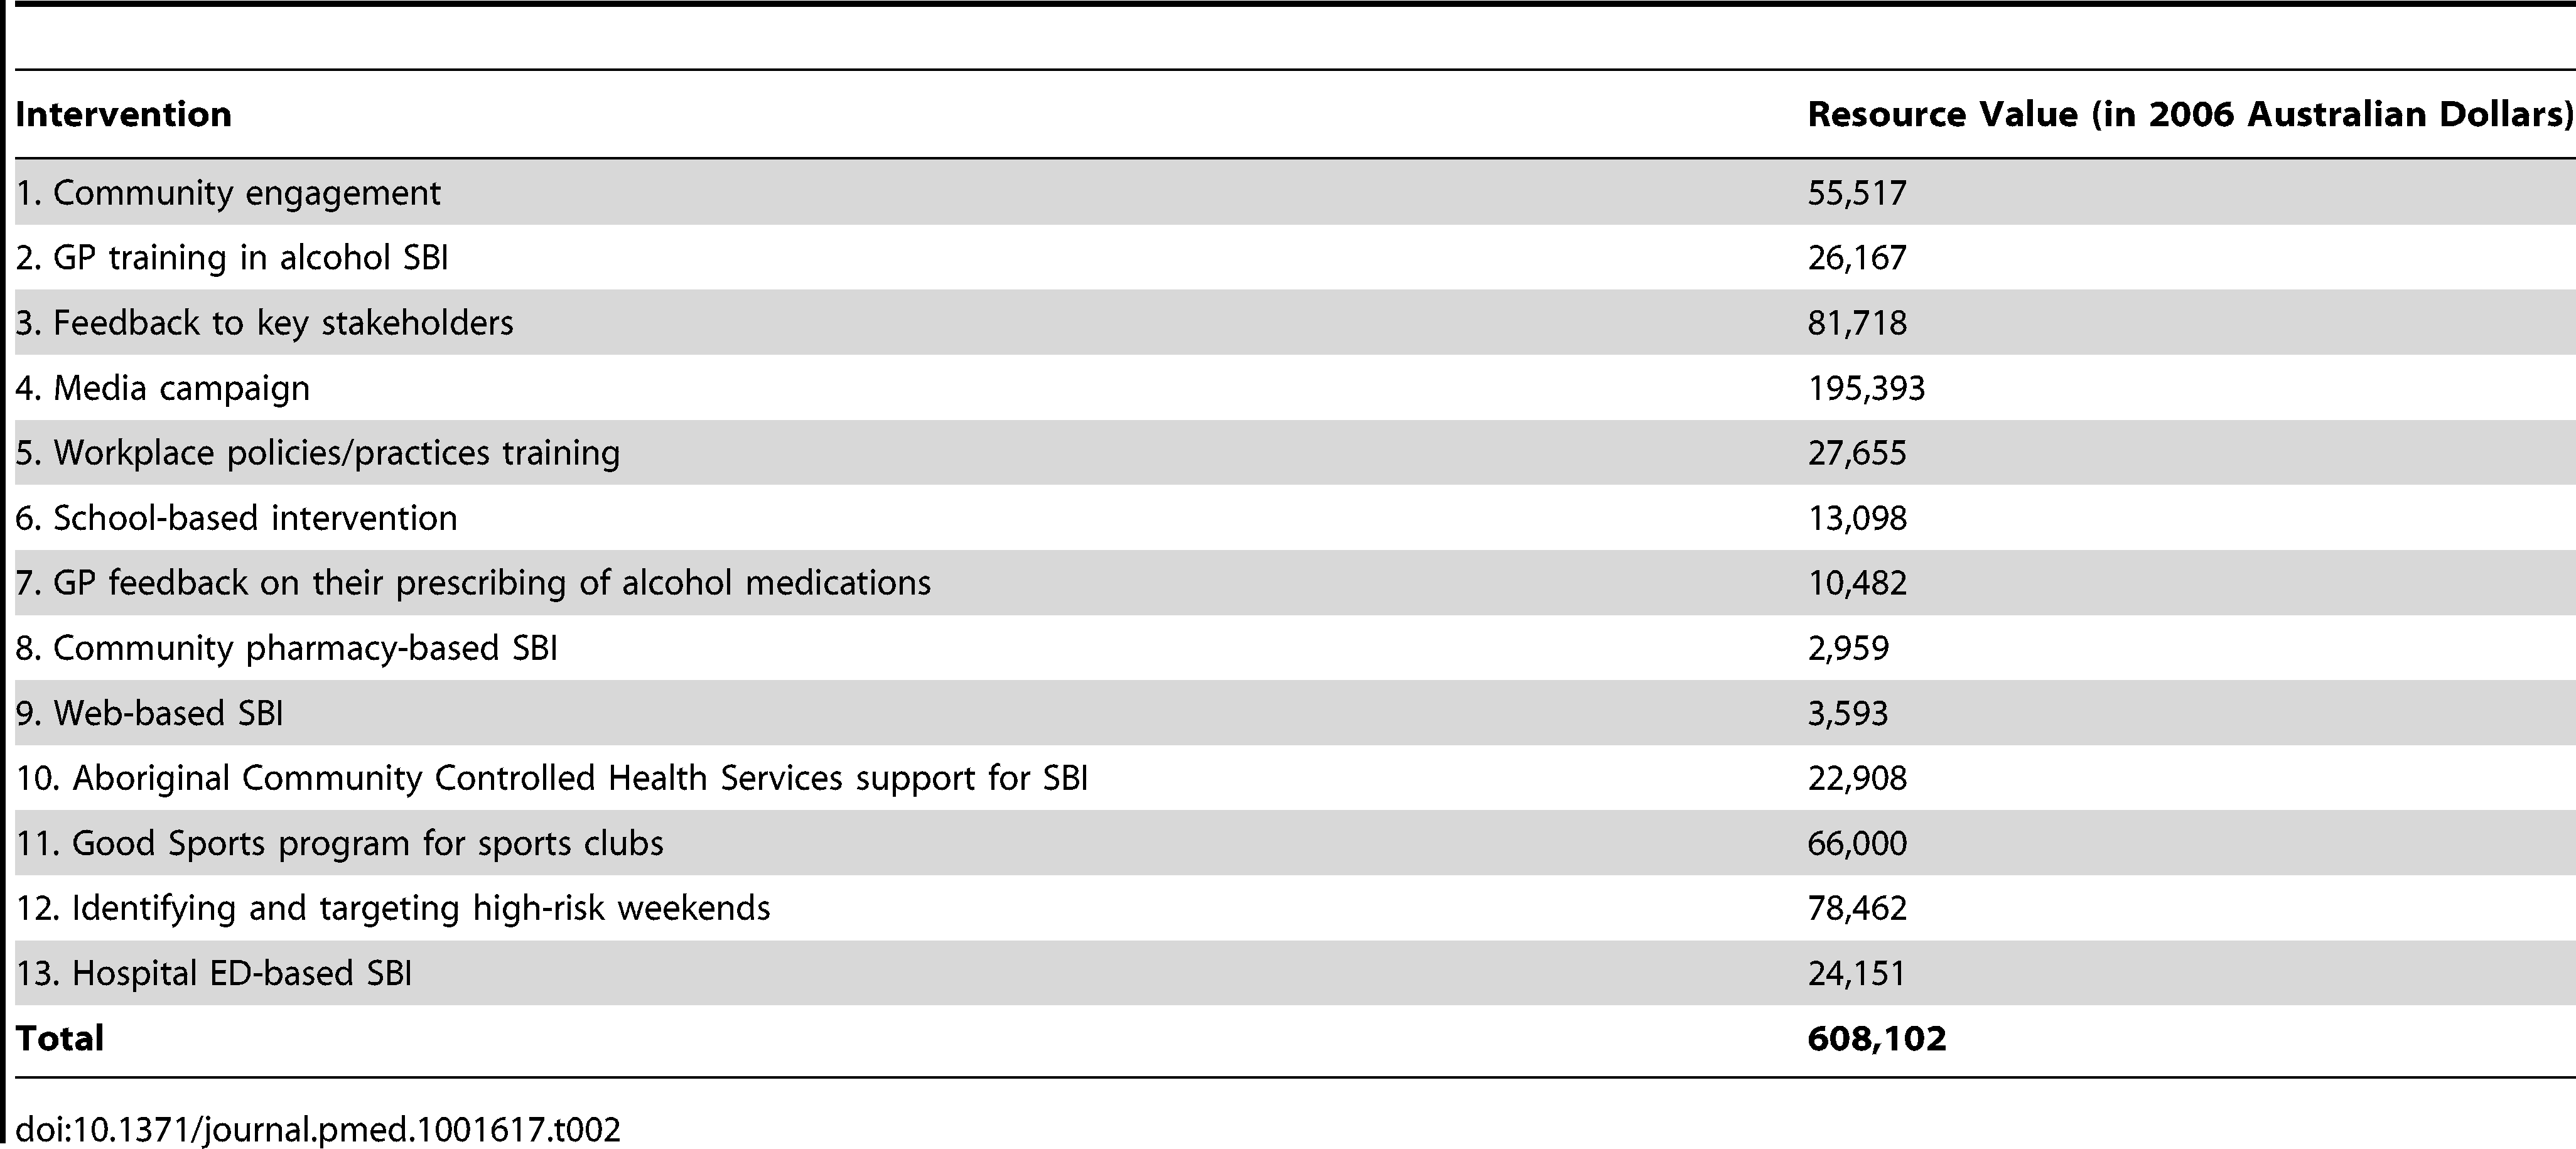 Summary of the AARC project interventions and their costs.